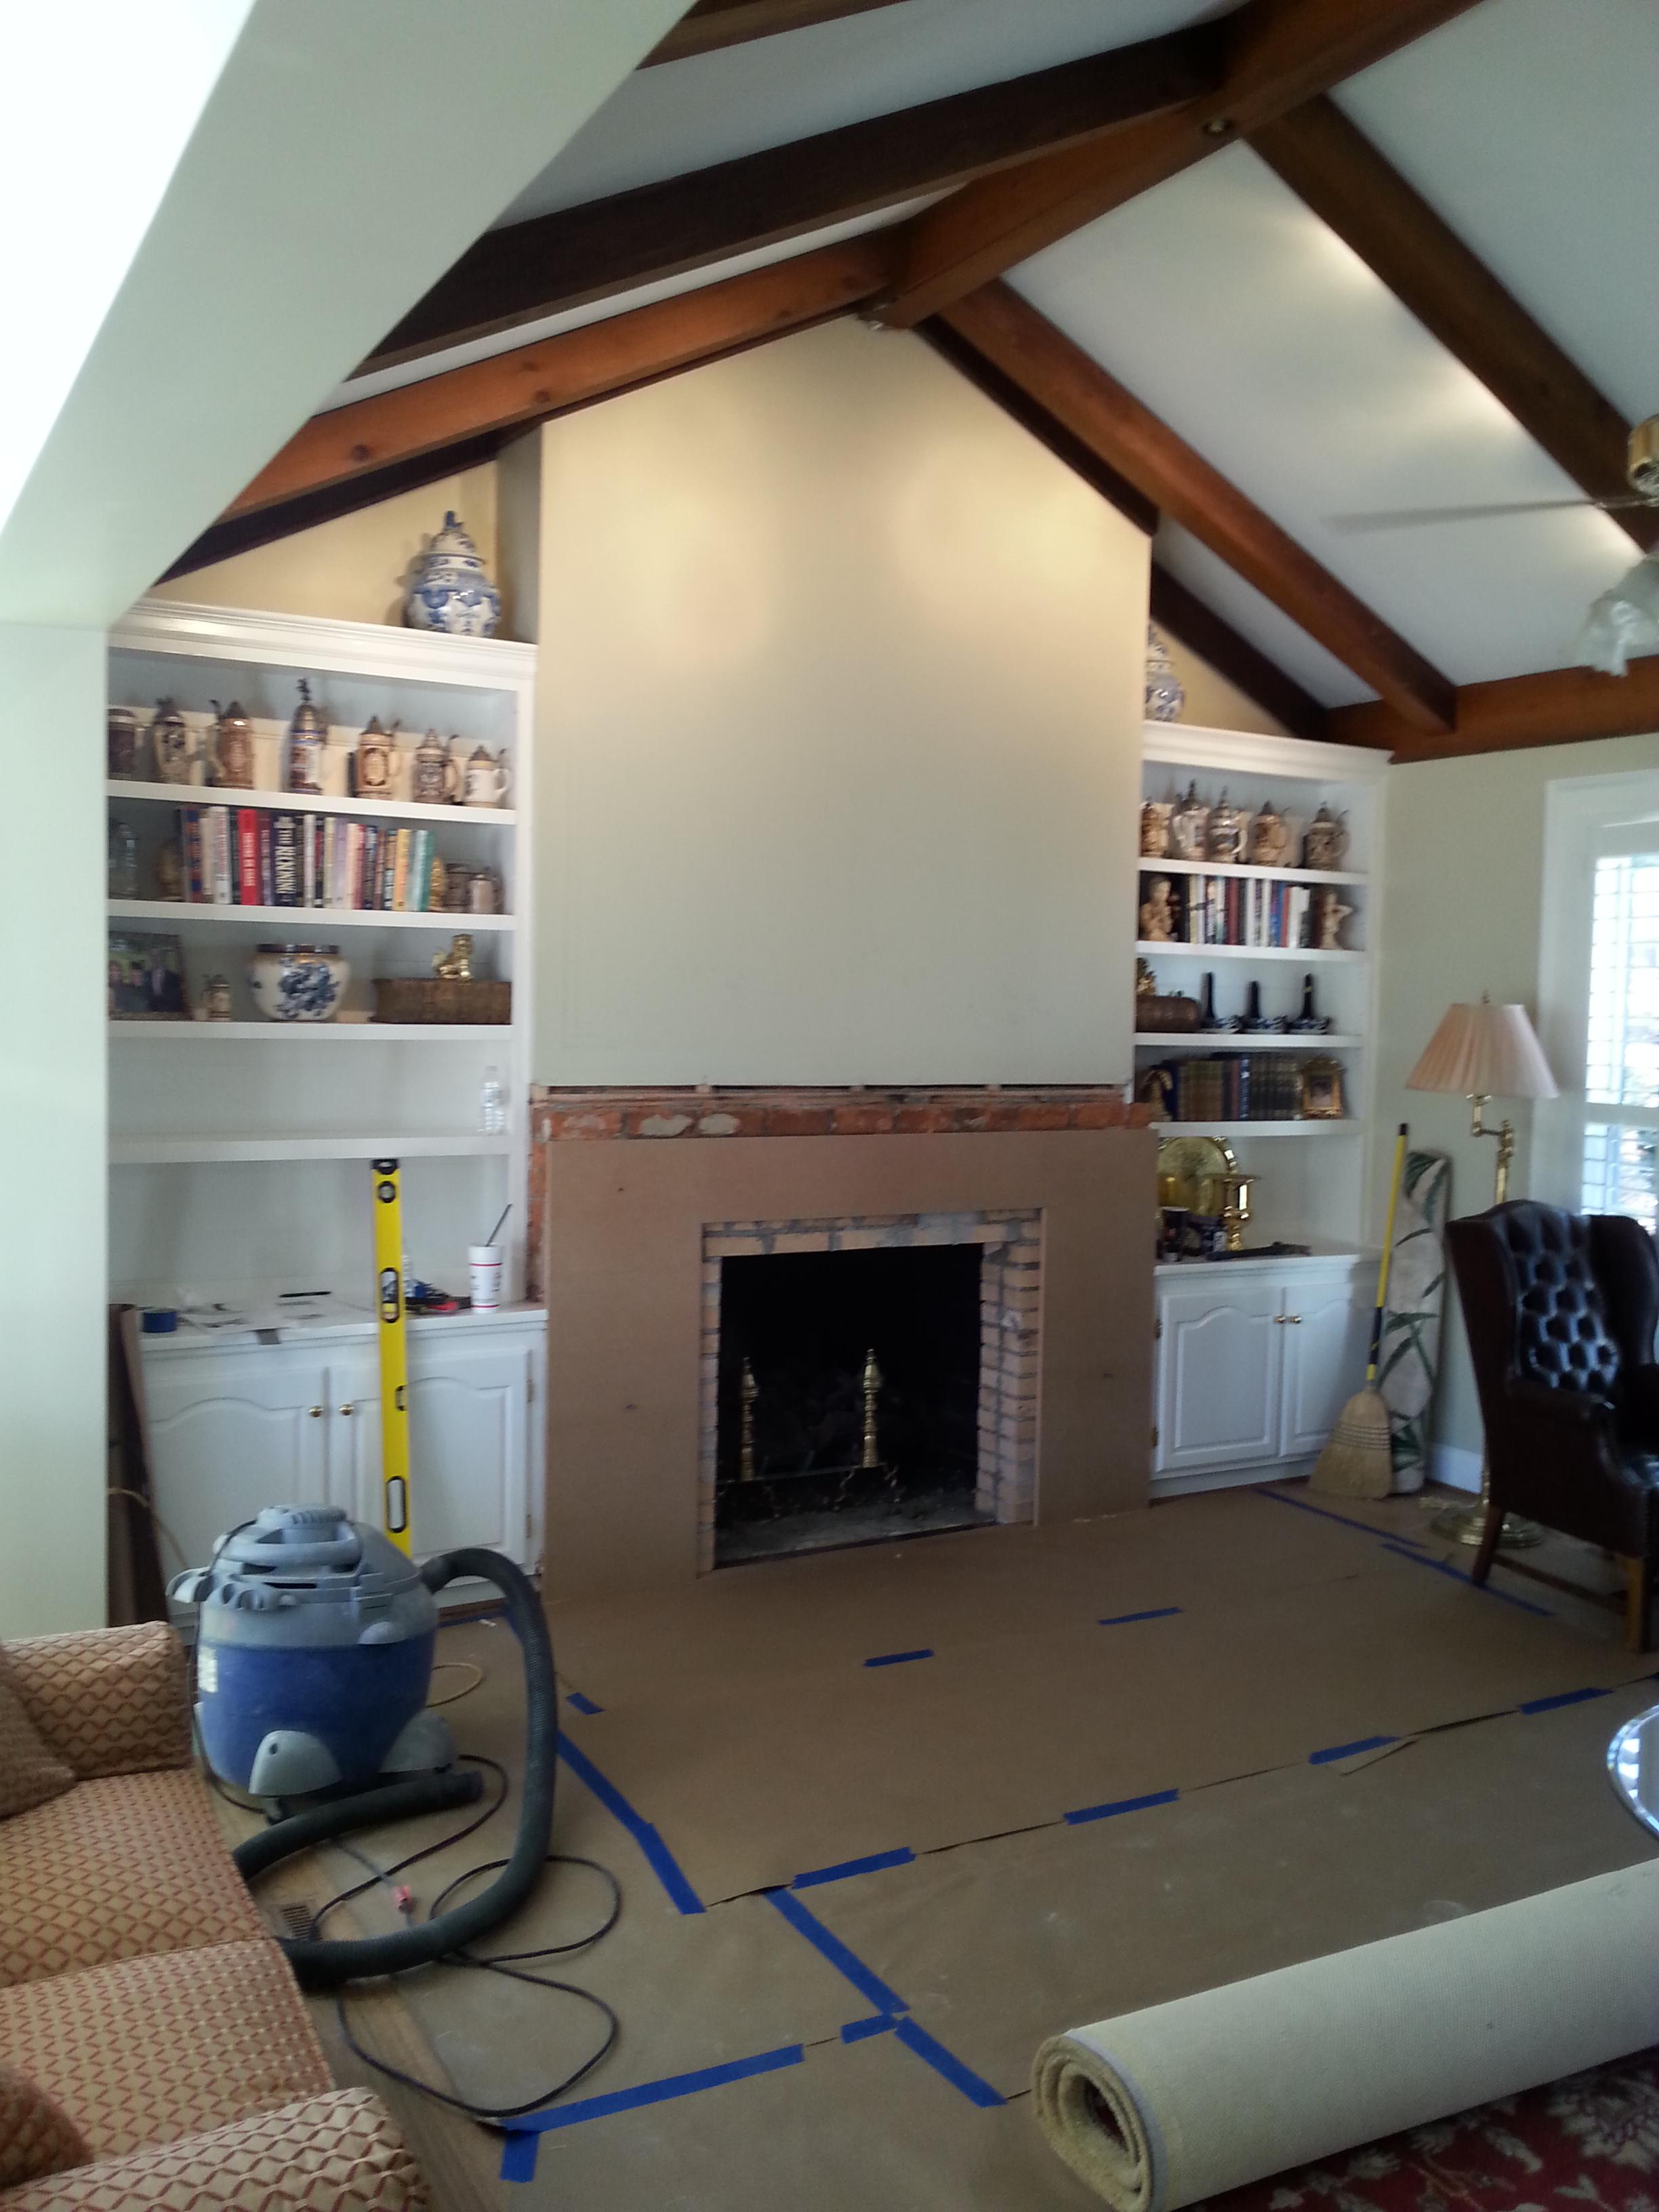 Remodeling Concepts By Jw Thomas Home Builders Llc In